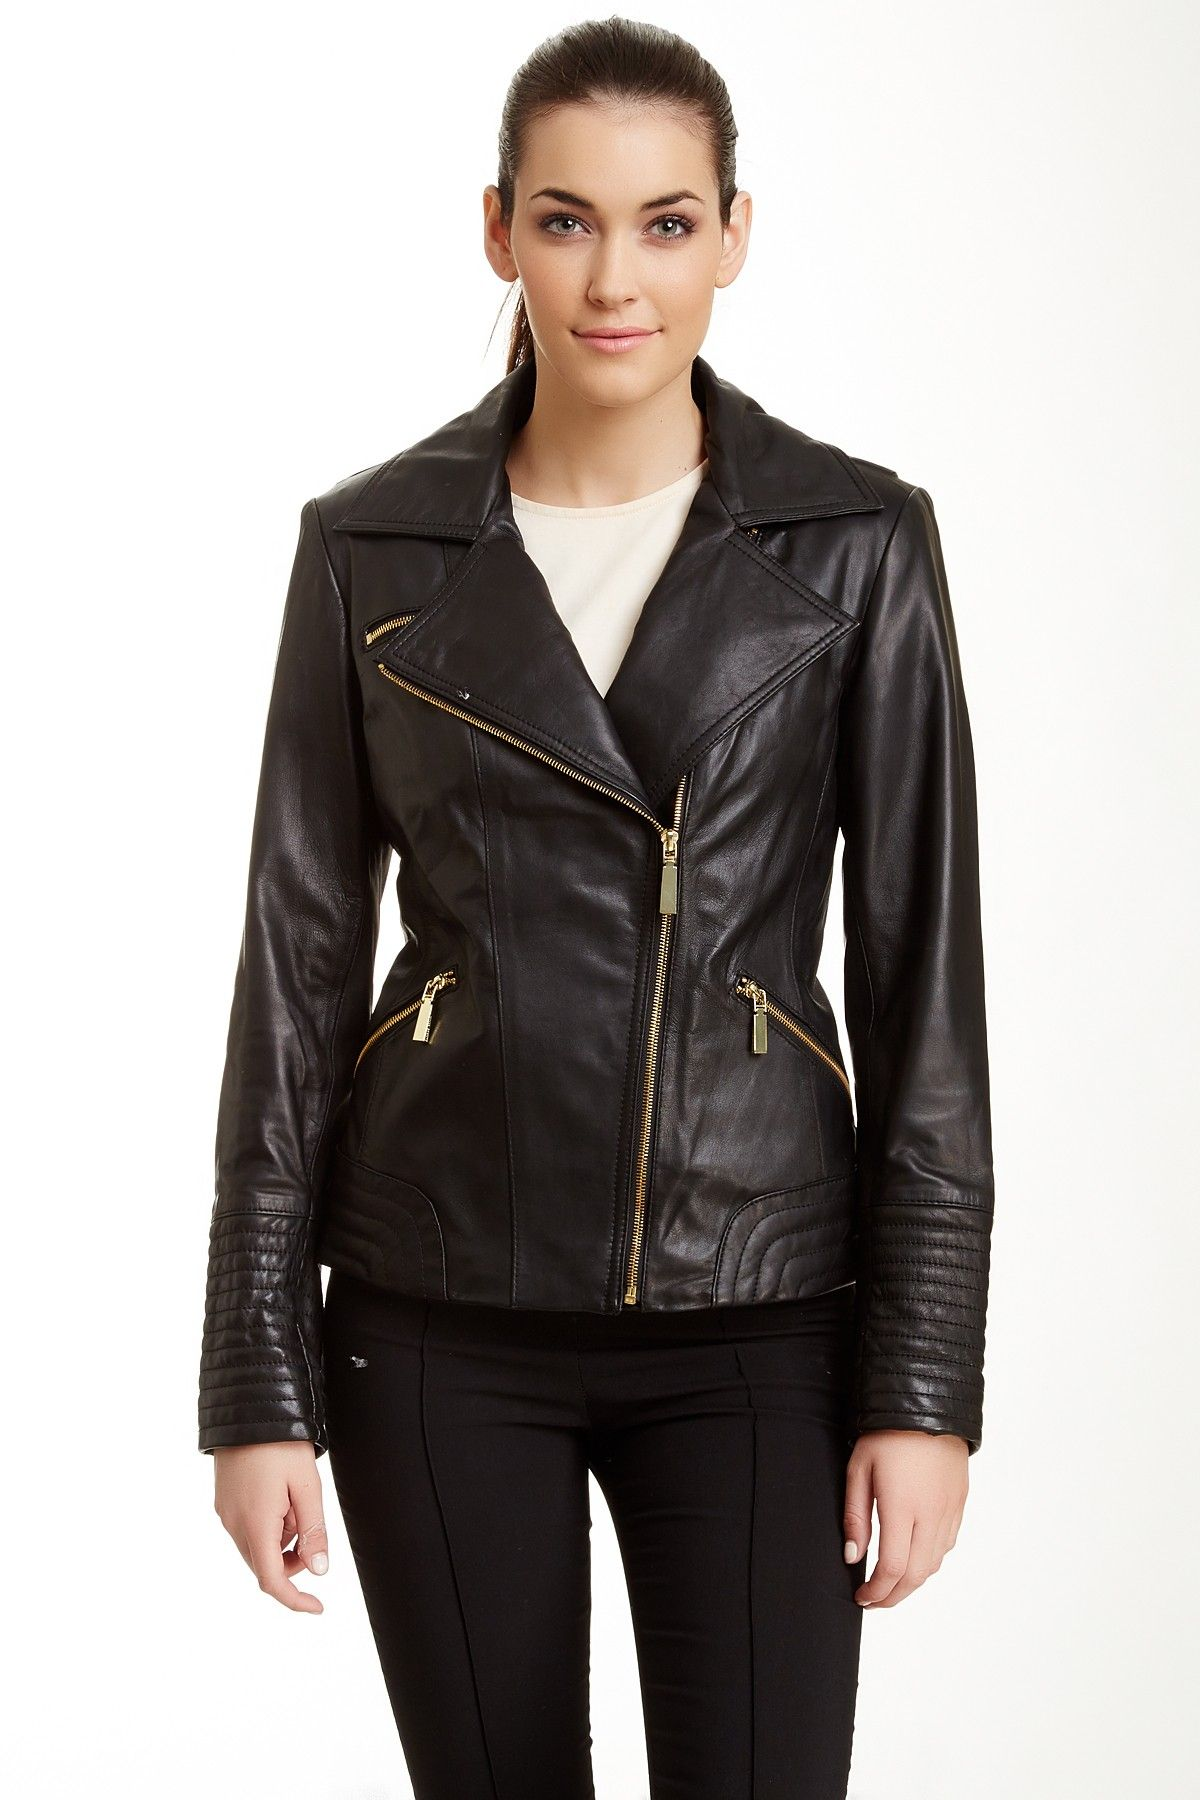 Vince Camuto Leather Moto Jacket By Vince Camuto On Nordstrom Rack Streetstyle [ 1800 x 1200 Pixel ]